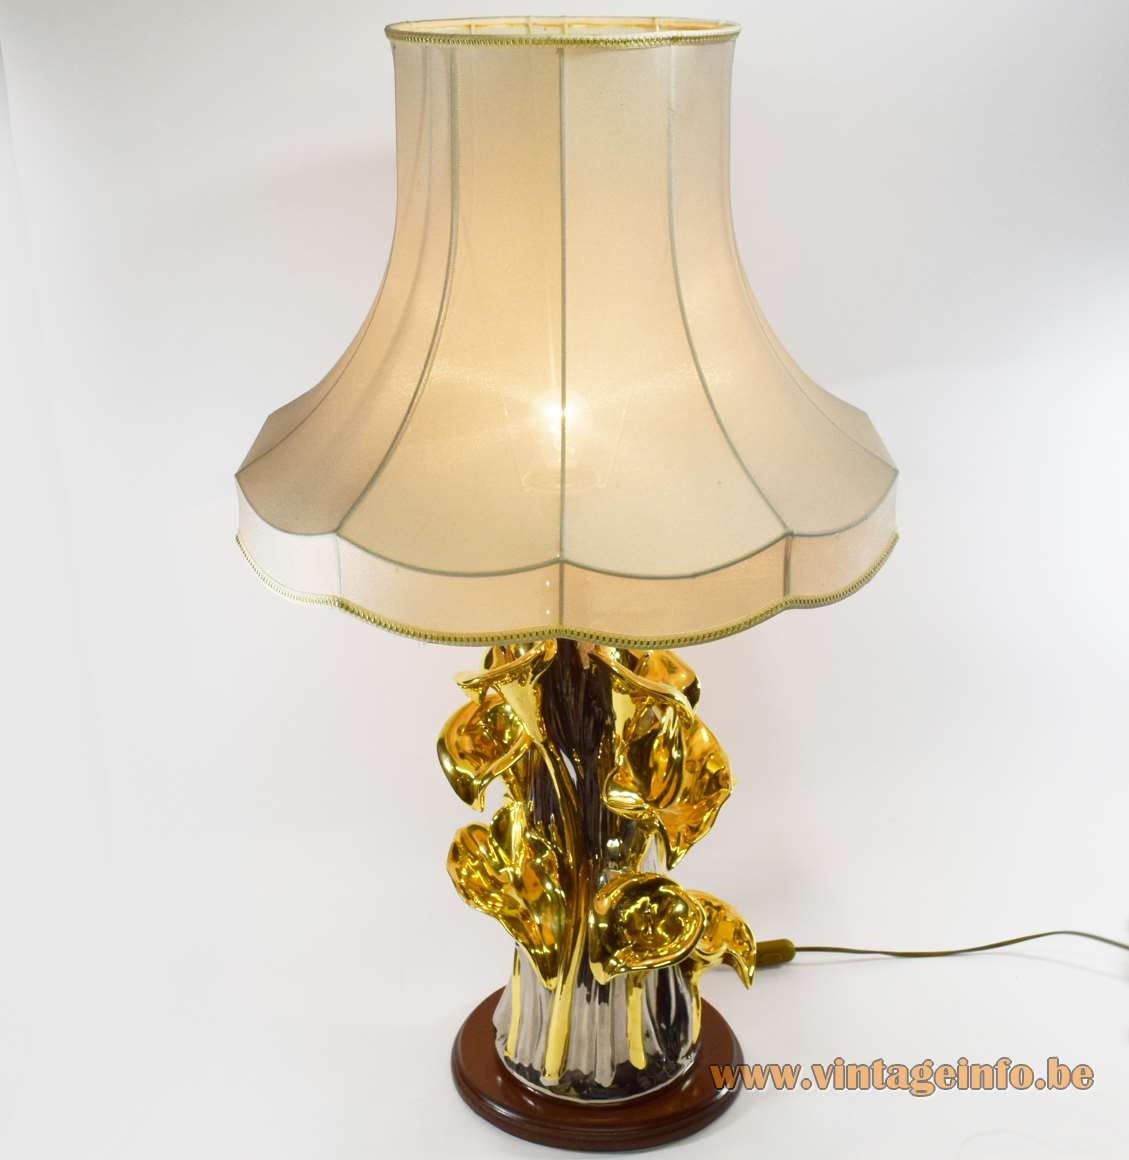 Zaccagnini Arum table lamp ceramics Florence Italy Porcellane San Marco anthurium flower 1970s 1980s